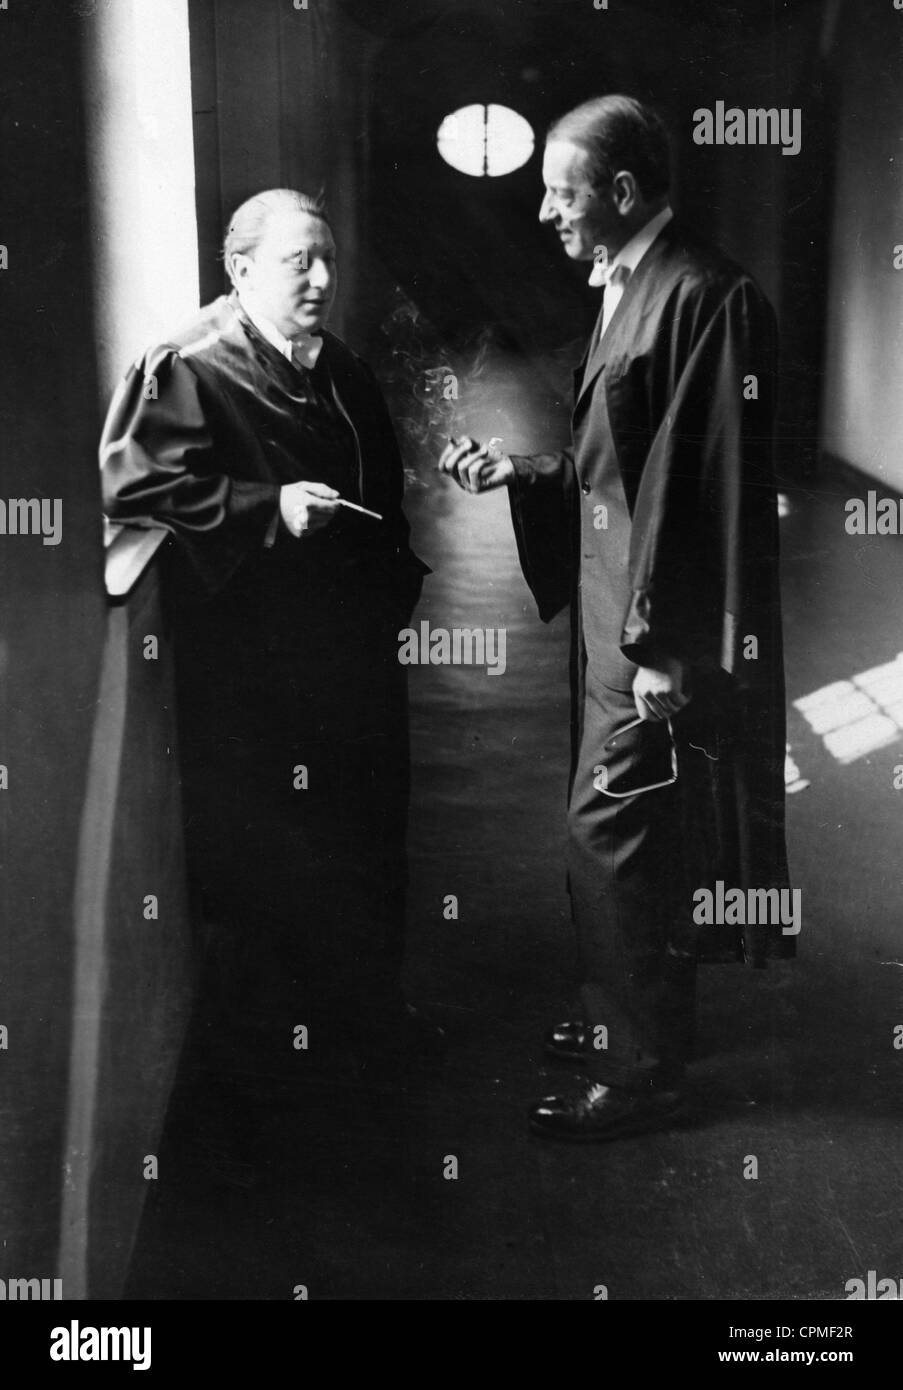 Gerhard Wilk and Rudolf Olden, 1931 - Stock Image